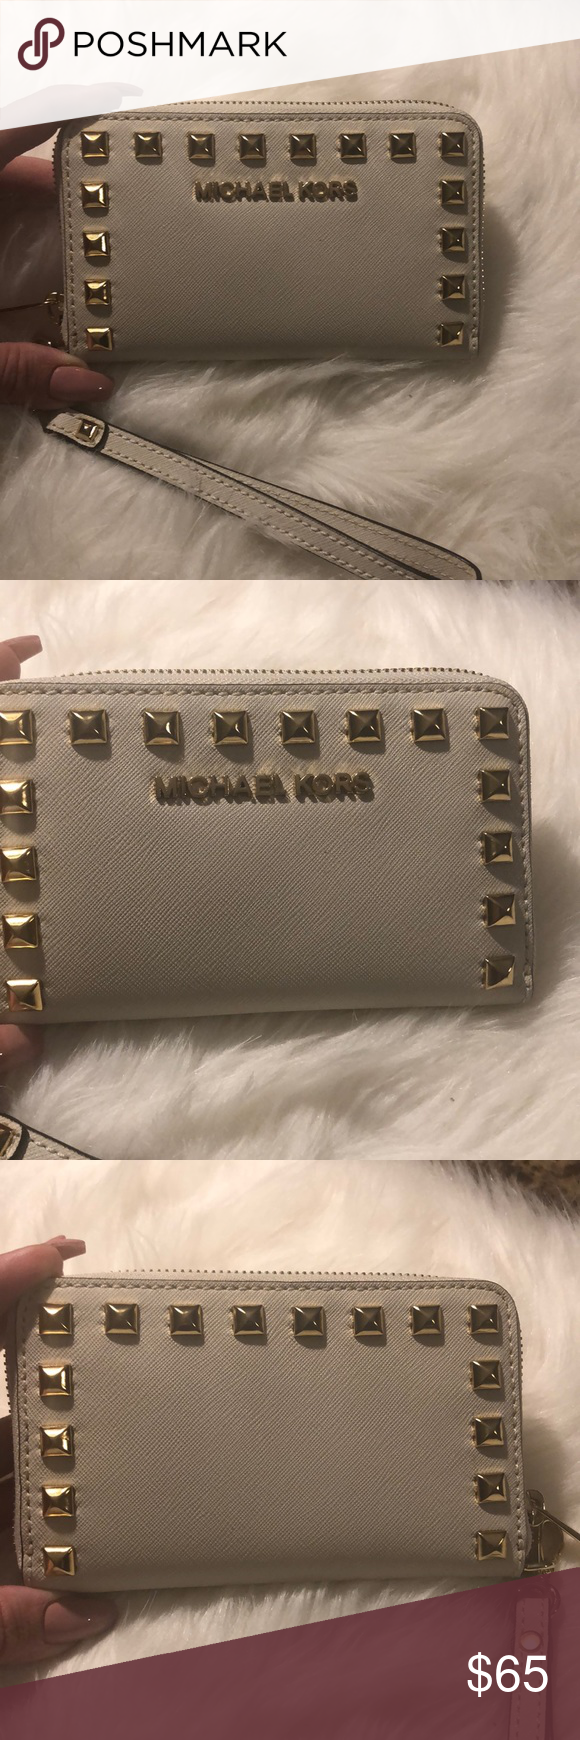 f3e83d779fdc ... australia sunday nite flash salemk studded wallet michael kors studded  wallet with detachable strap cream 3c301